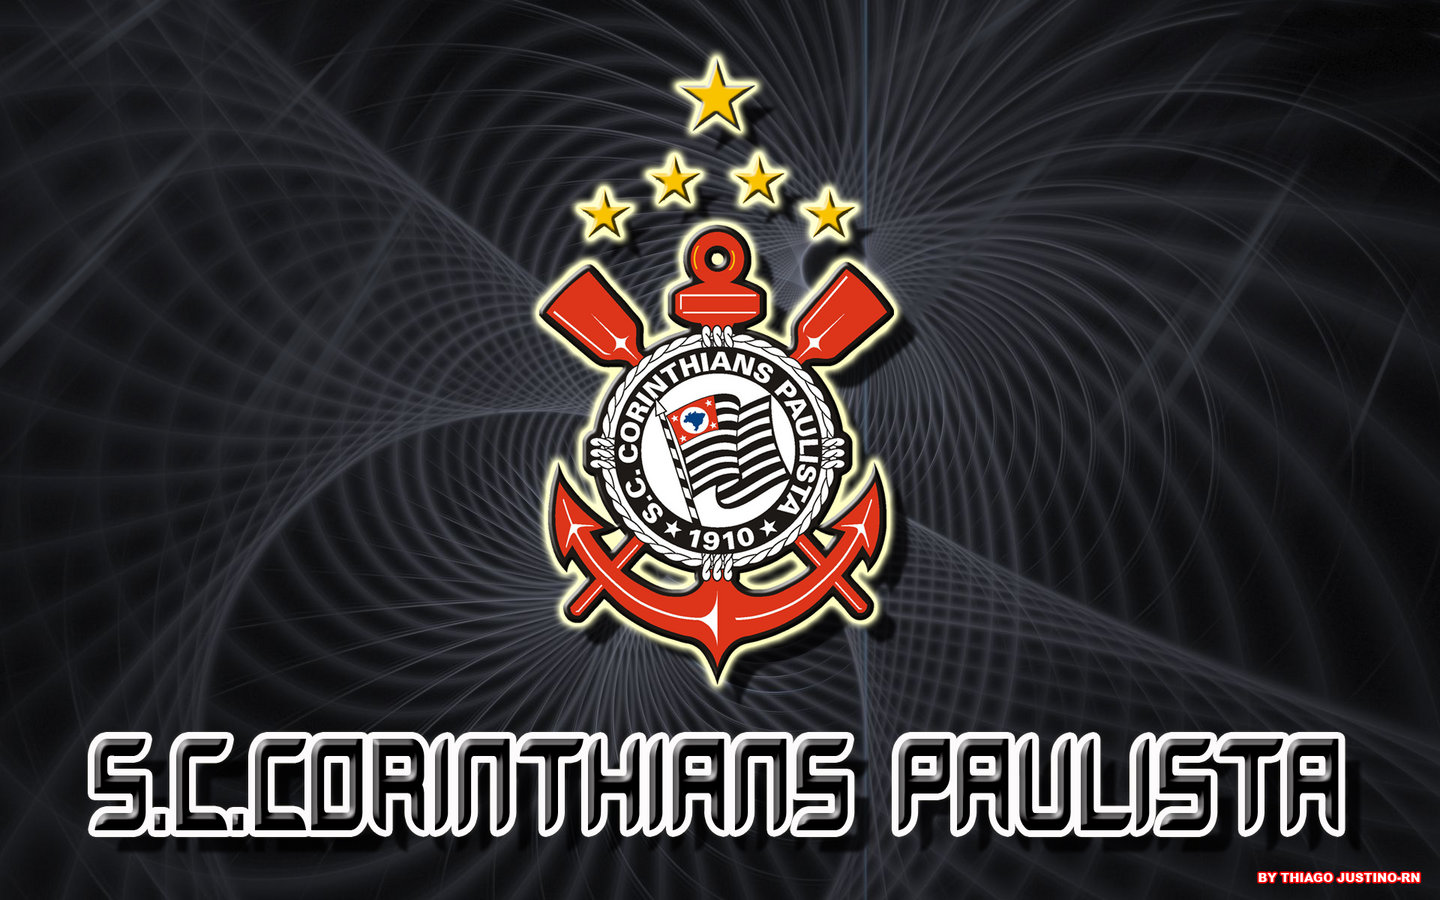 Papel De Parede Do Corinthians wallpaper 106235